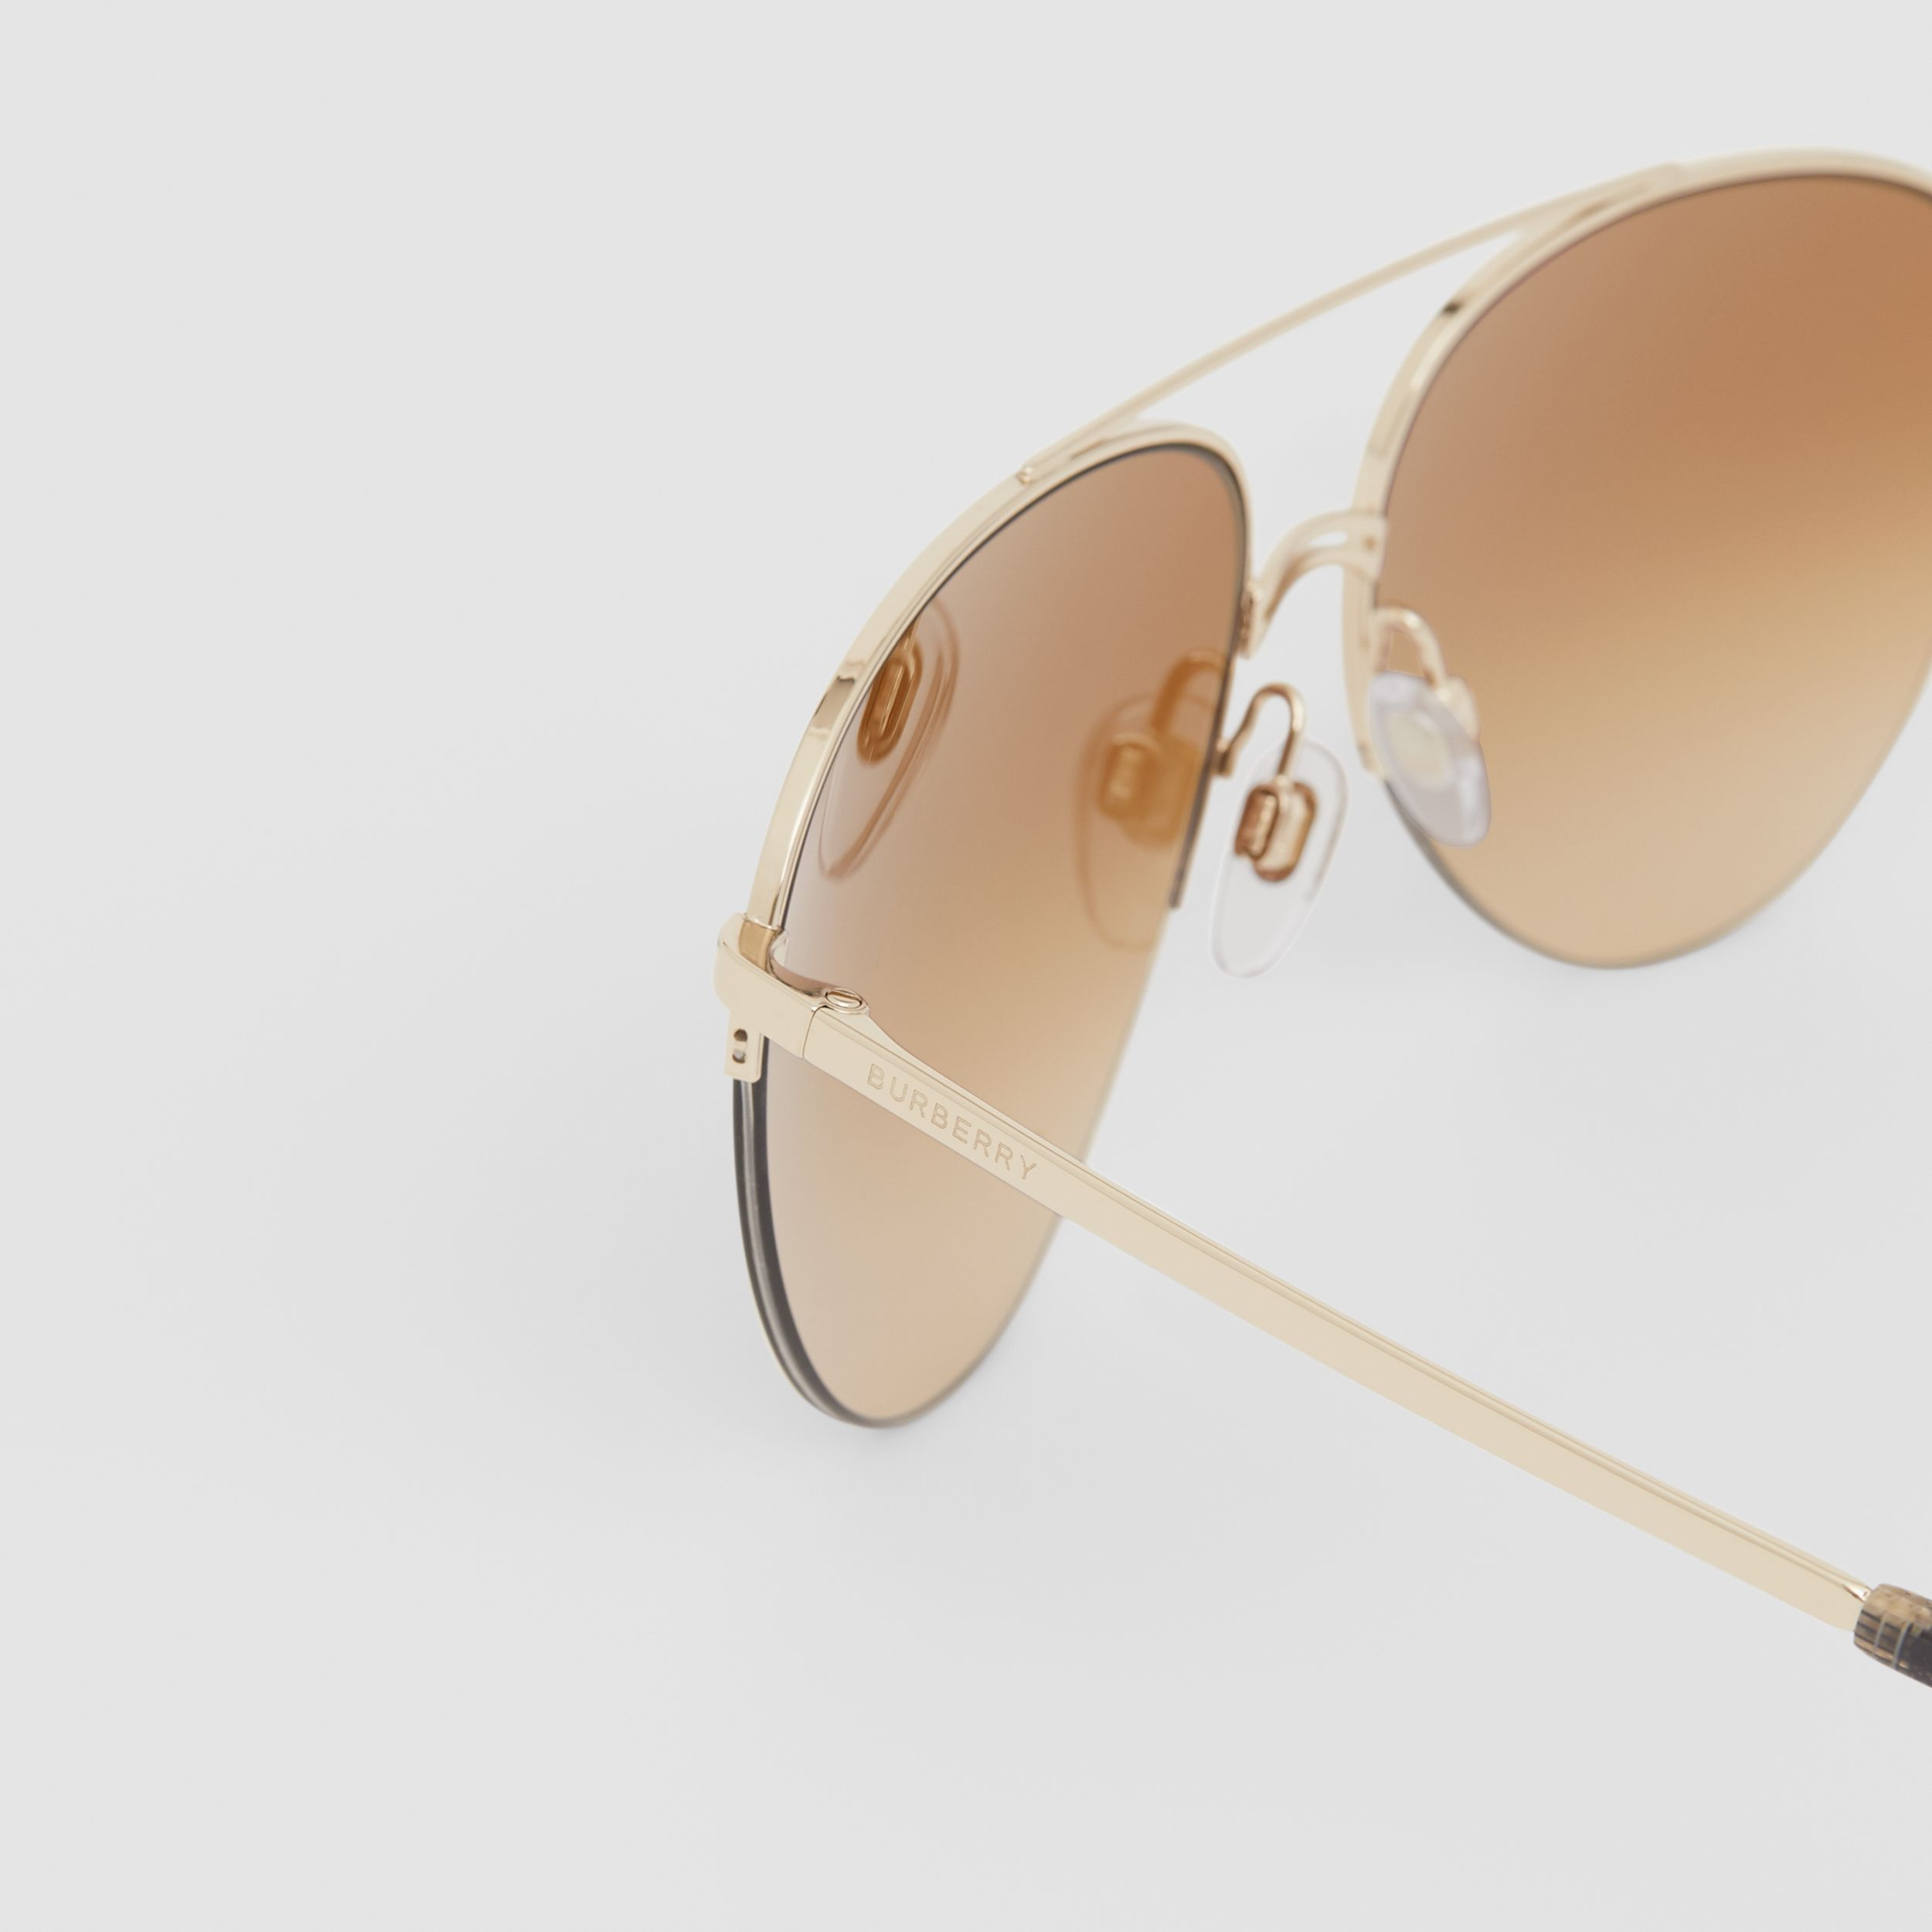 Top Bar Detail Pilot Sunglasses in Light Brown - Women | Burberry Australia - 2